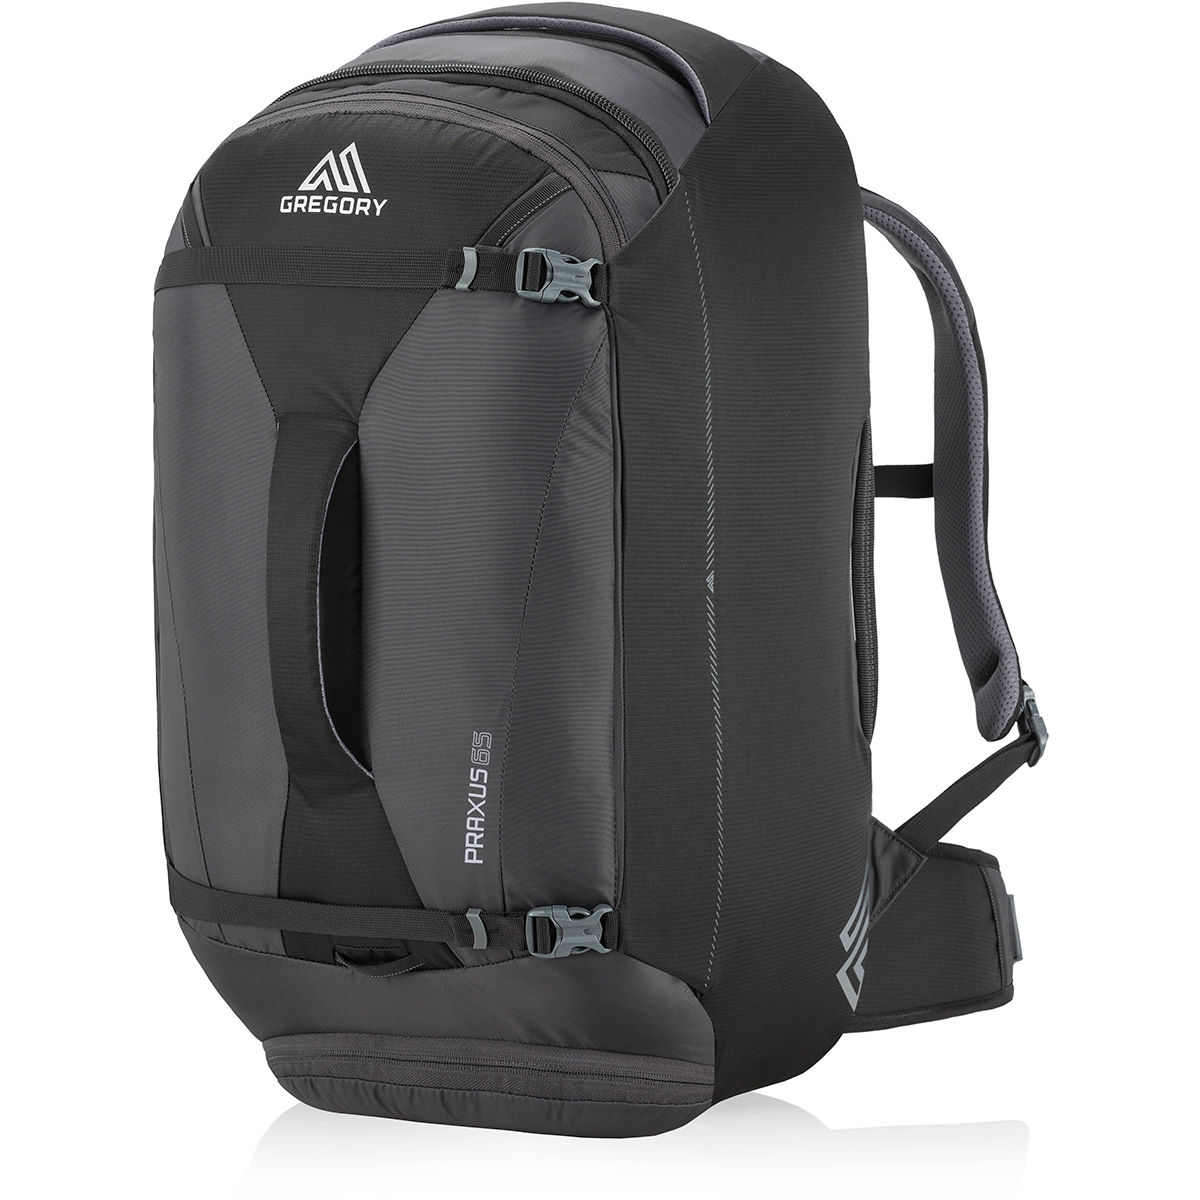 Gregory Gregory Praxus 65 Backpack   Rucksacks